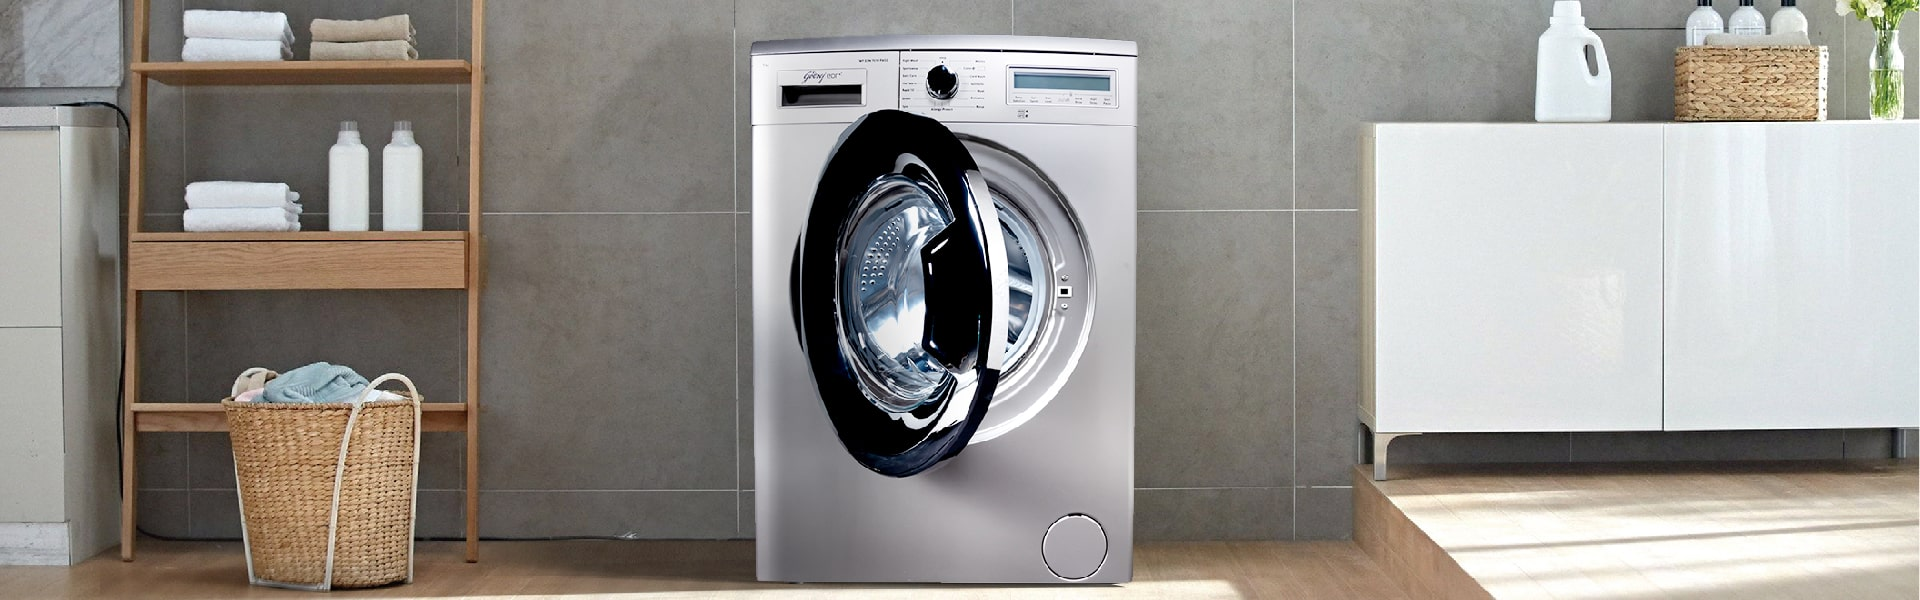 Pick a Washing Machine That Meets Your Needs